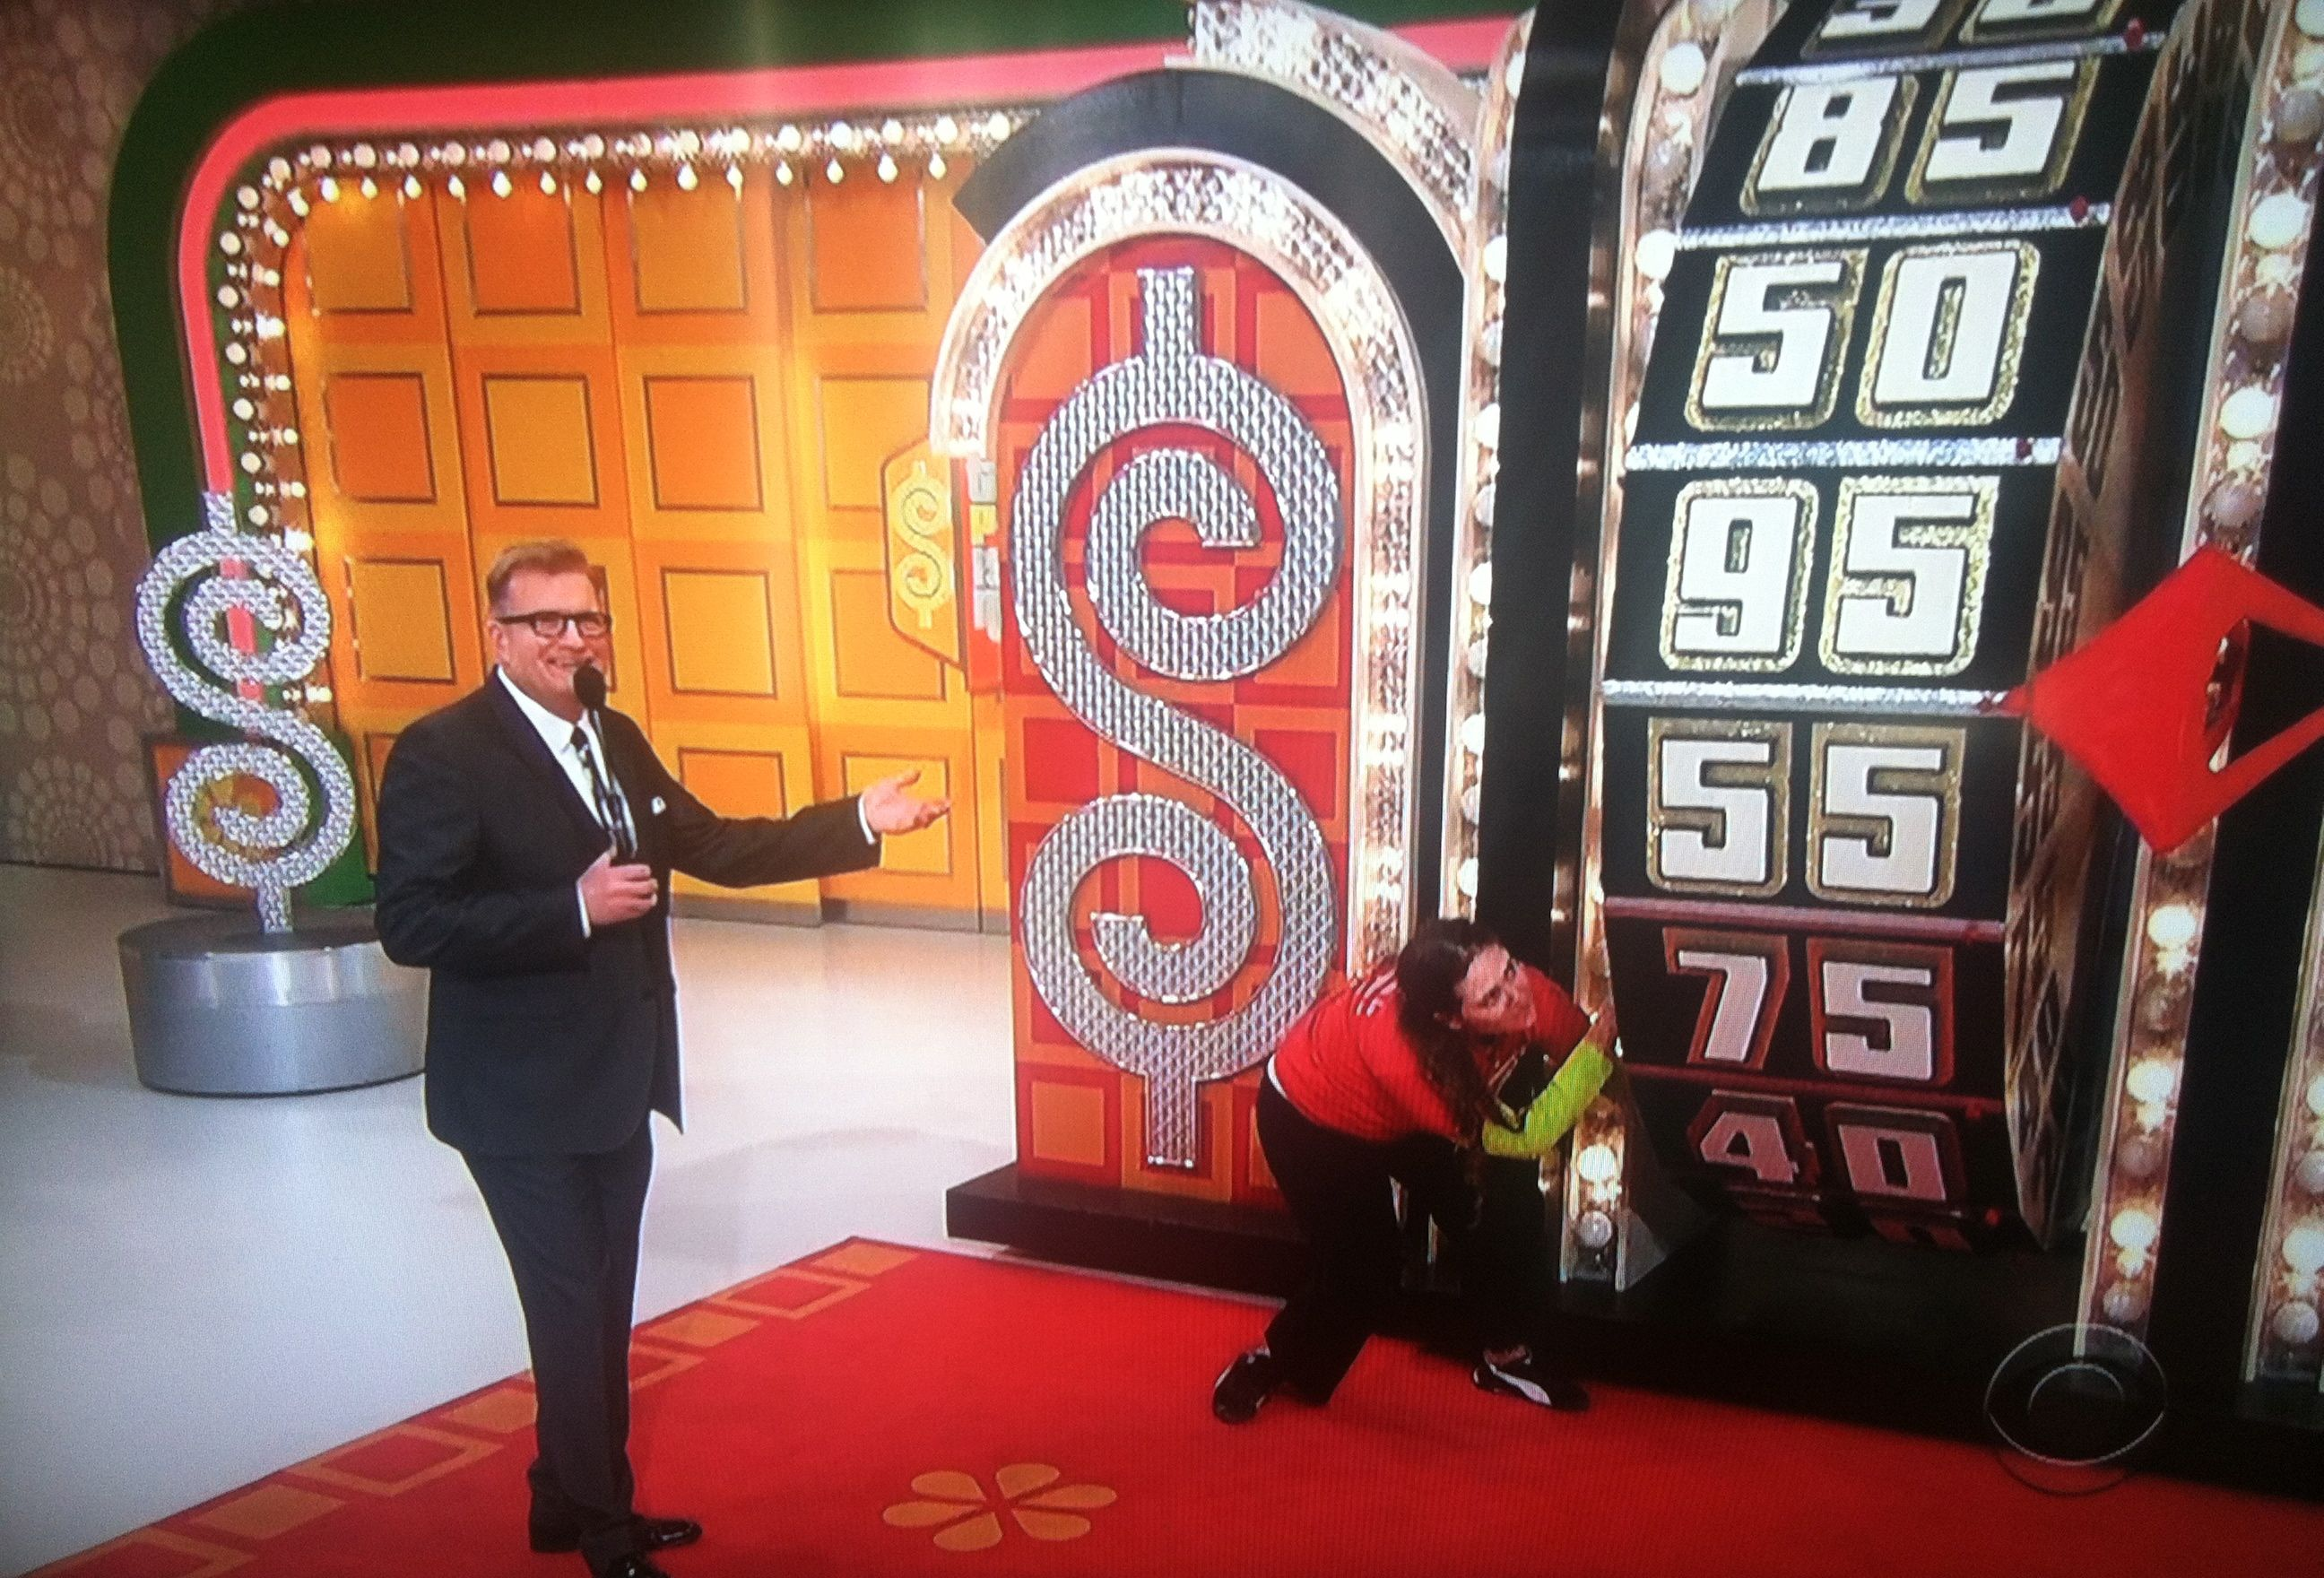 Aurora De Lucia down low, getting momentum on The Price is Right wheel as Drew Carey talks.